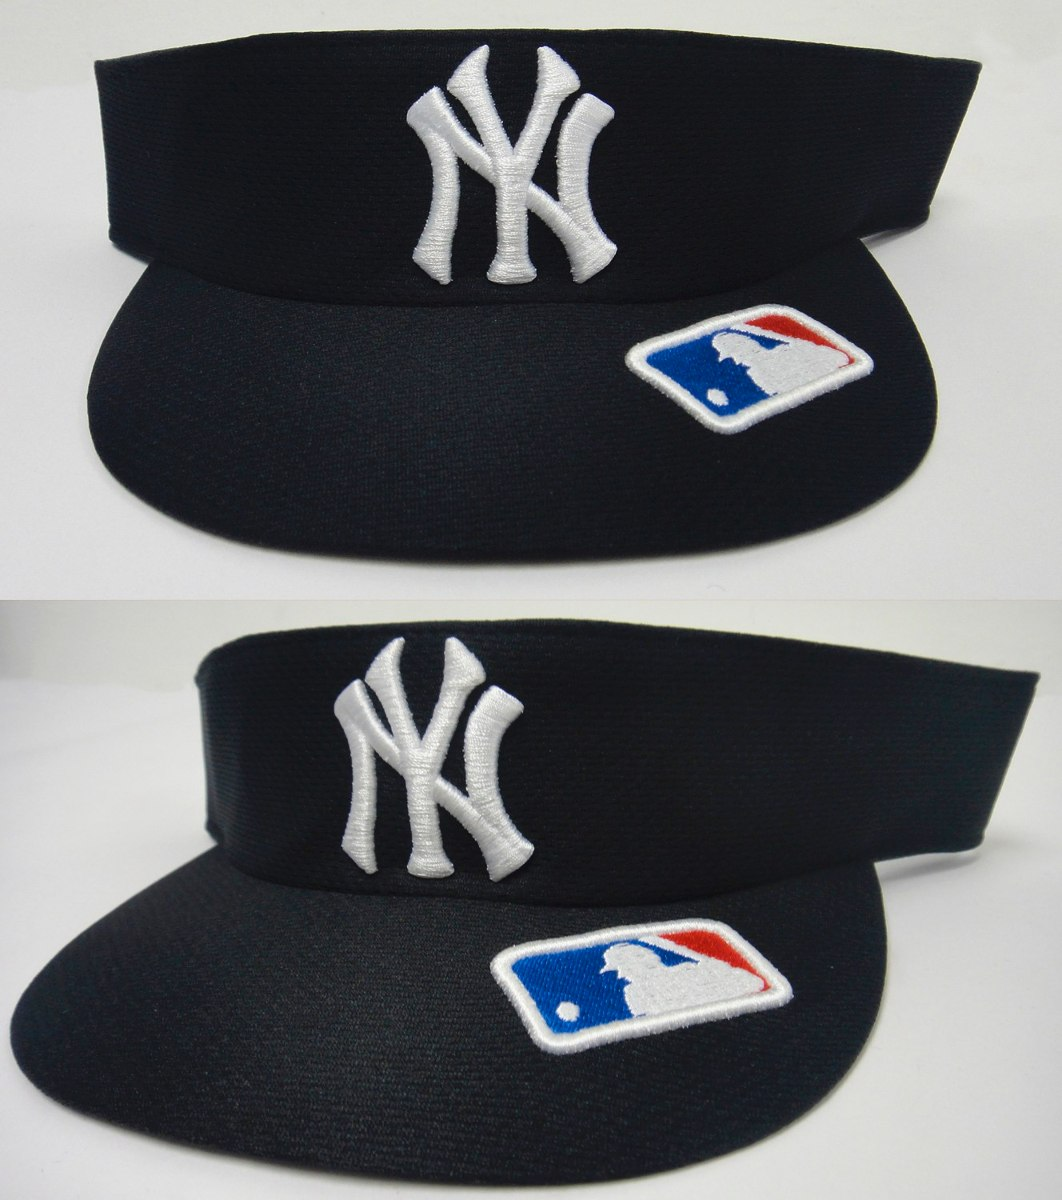 viseras - new york yankees. Cargando zoom. 299a25b8226